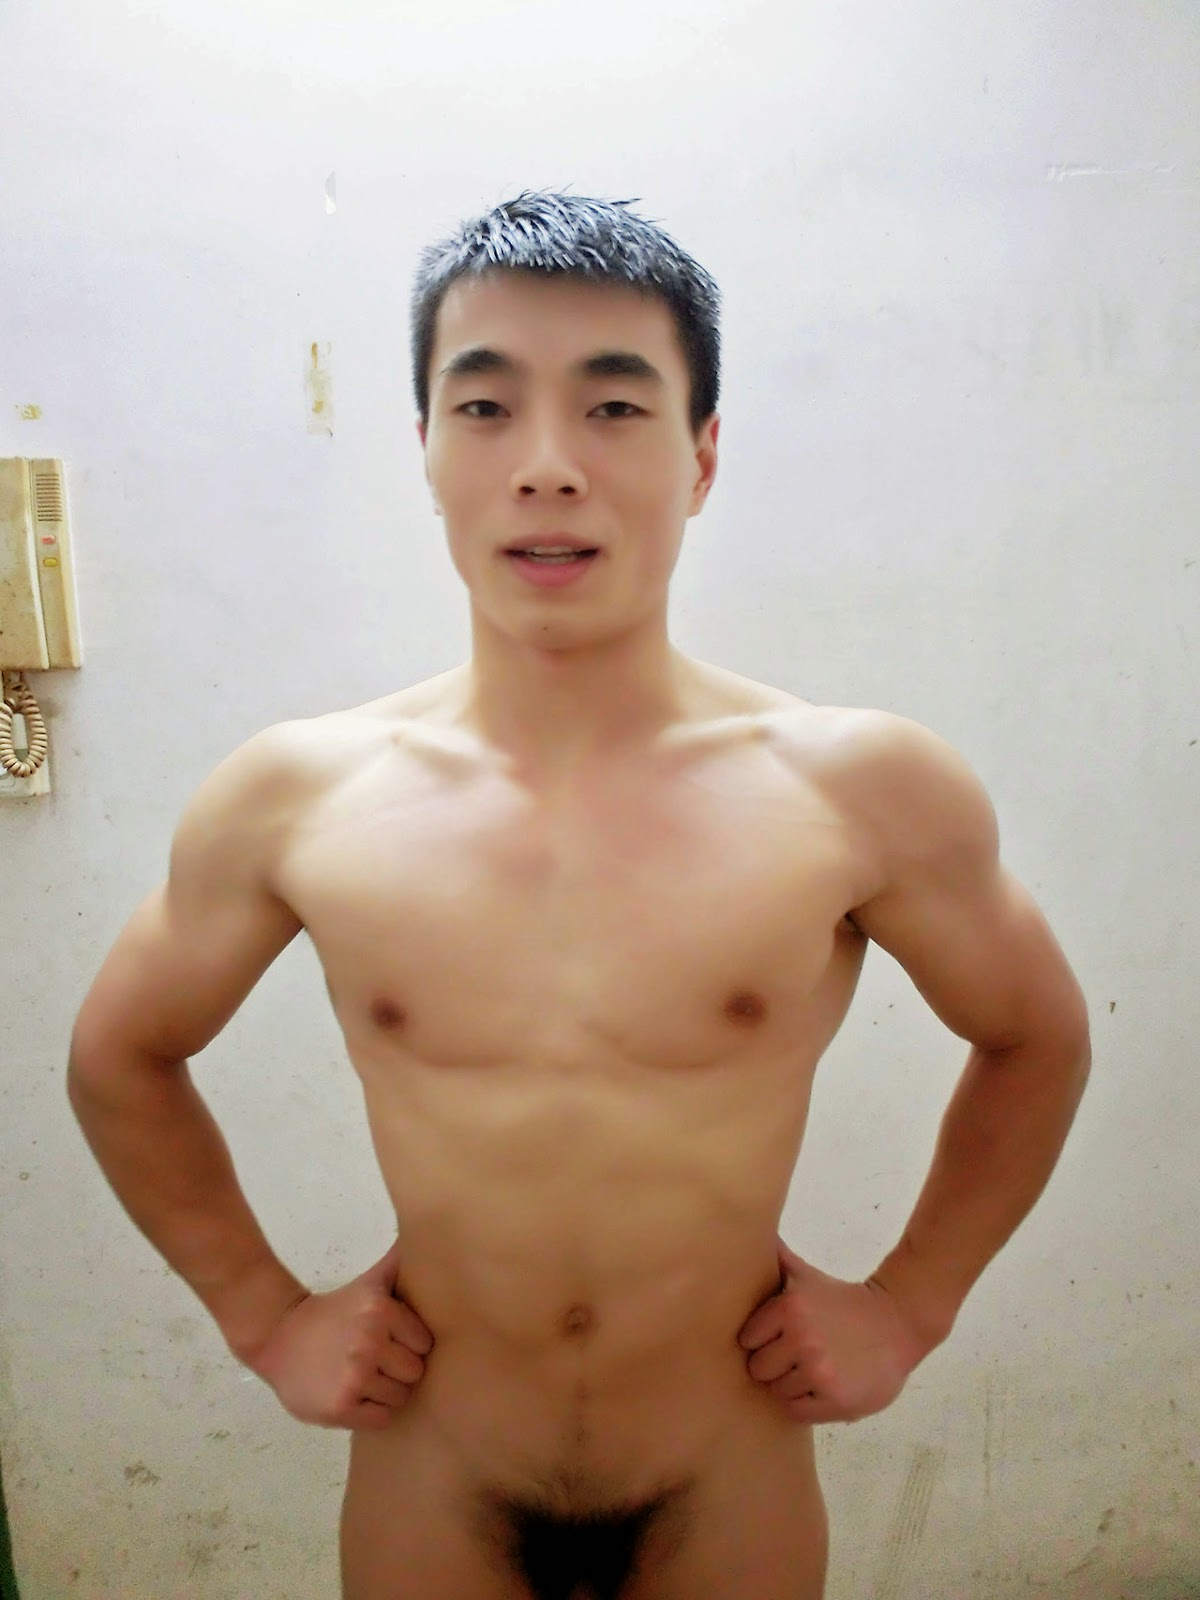 naked Asian boys More Naked Asian boys – Asian boy collection 4